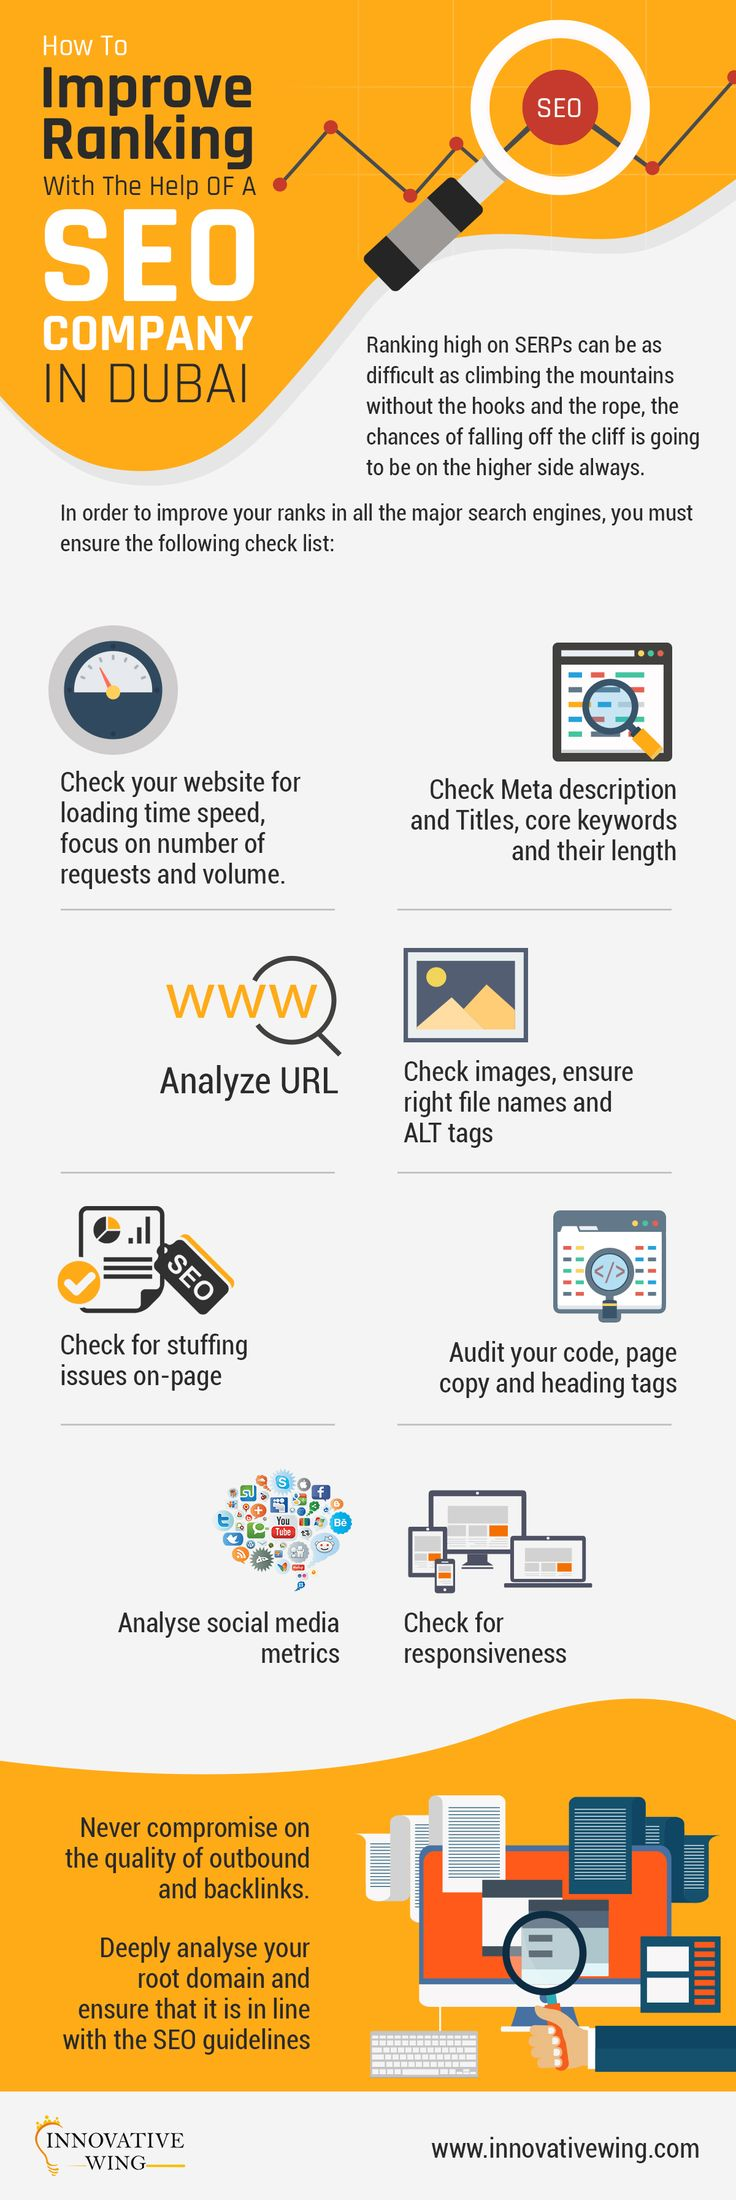 How To Improve Your Search Engine Rankings Checklist